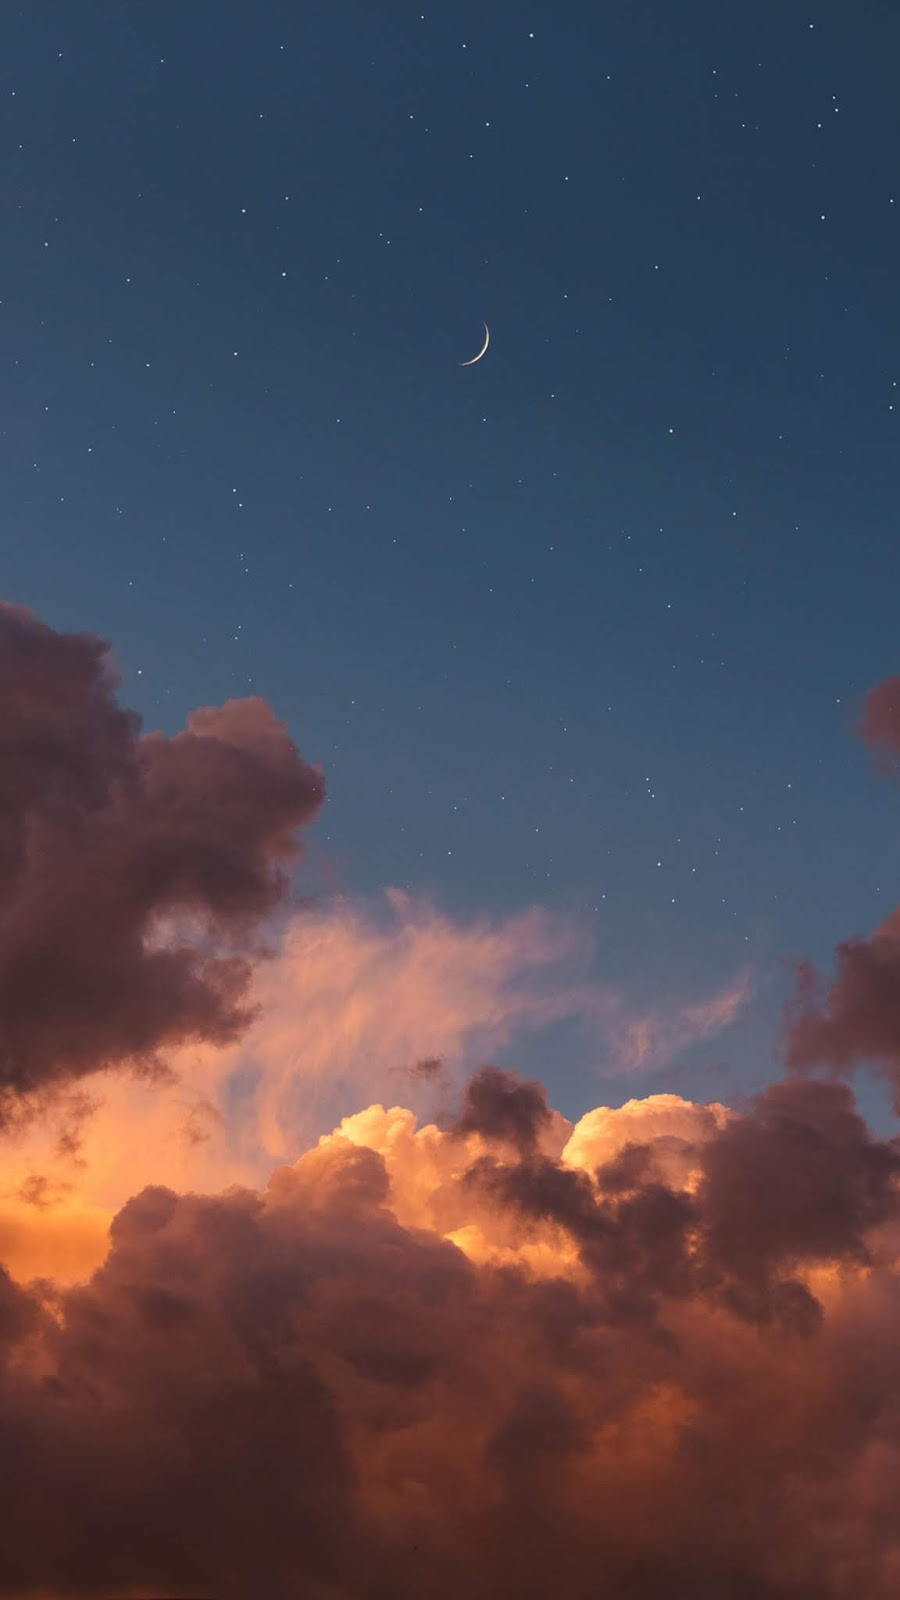 Crescent moon in the night sky wallpaper